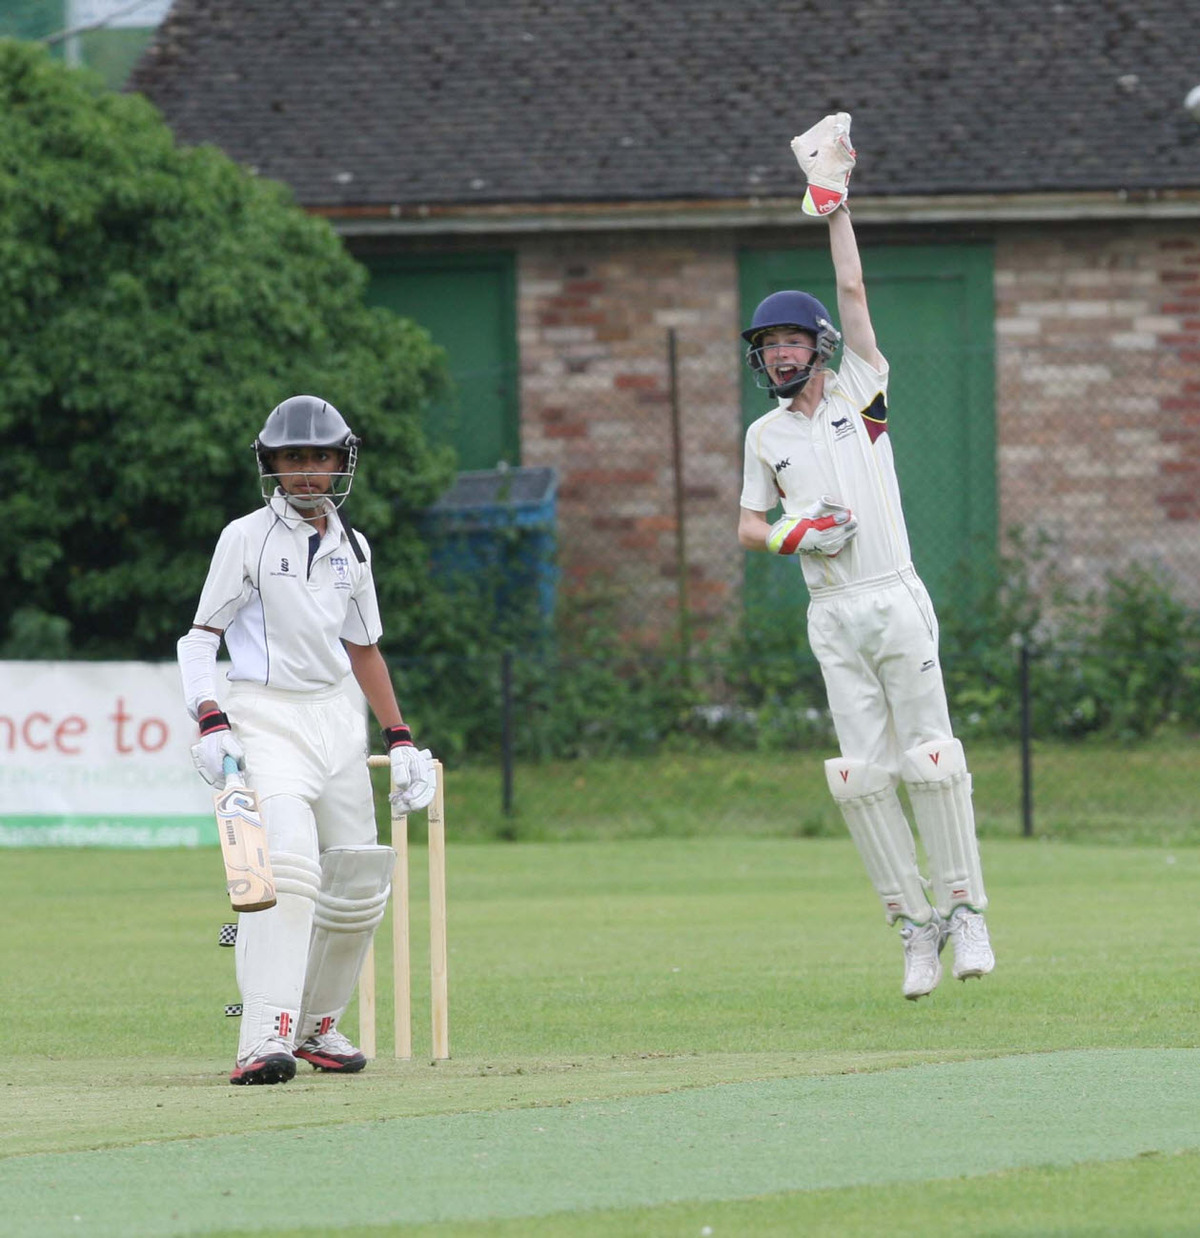 Oxfordshire Under 13s wicket-keeper Jake Taylor appeals unsuccessfully for lbw against Bedfordshire captain Rahul Sheemar